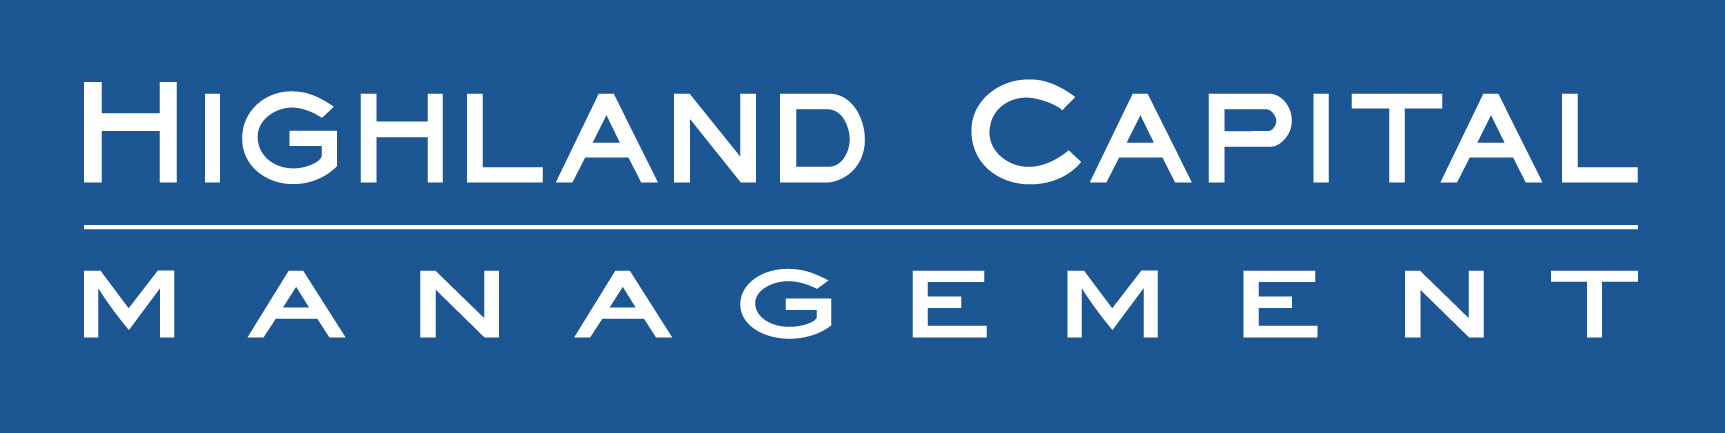 Highland Capital Management